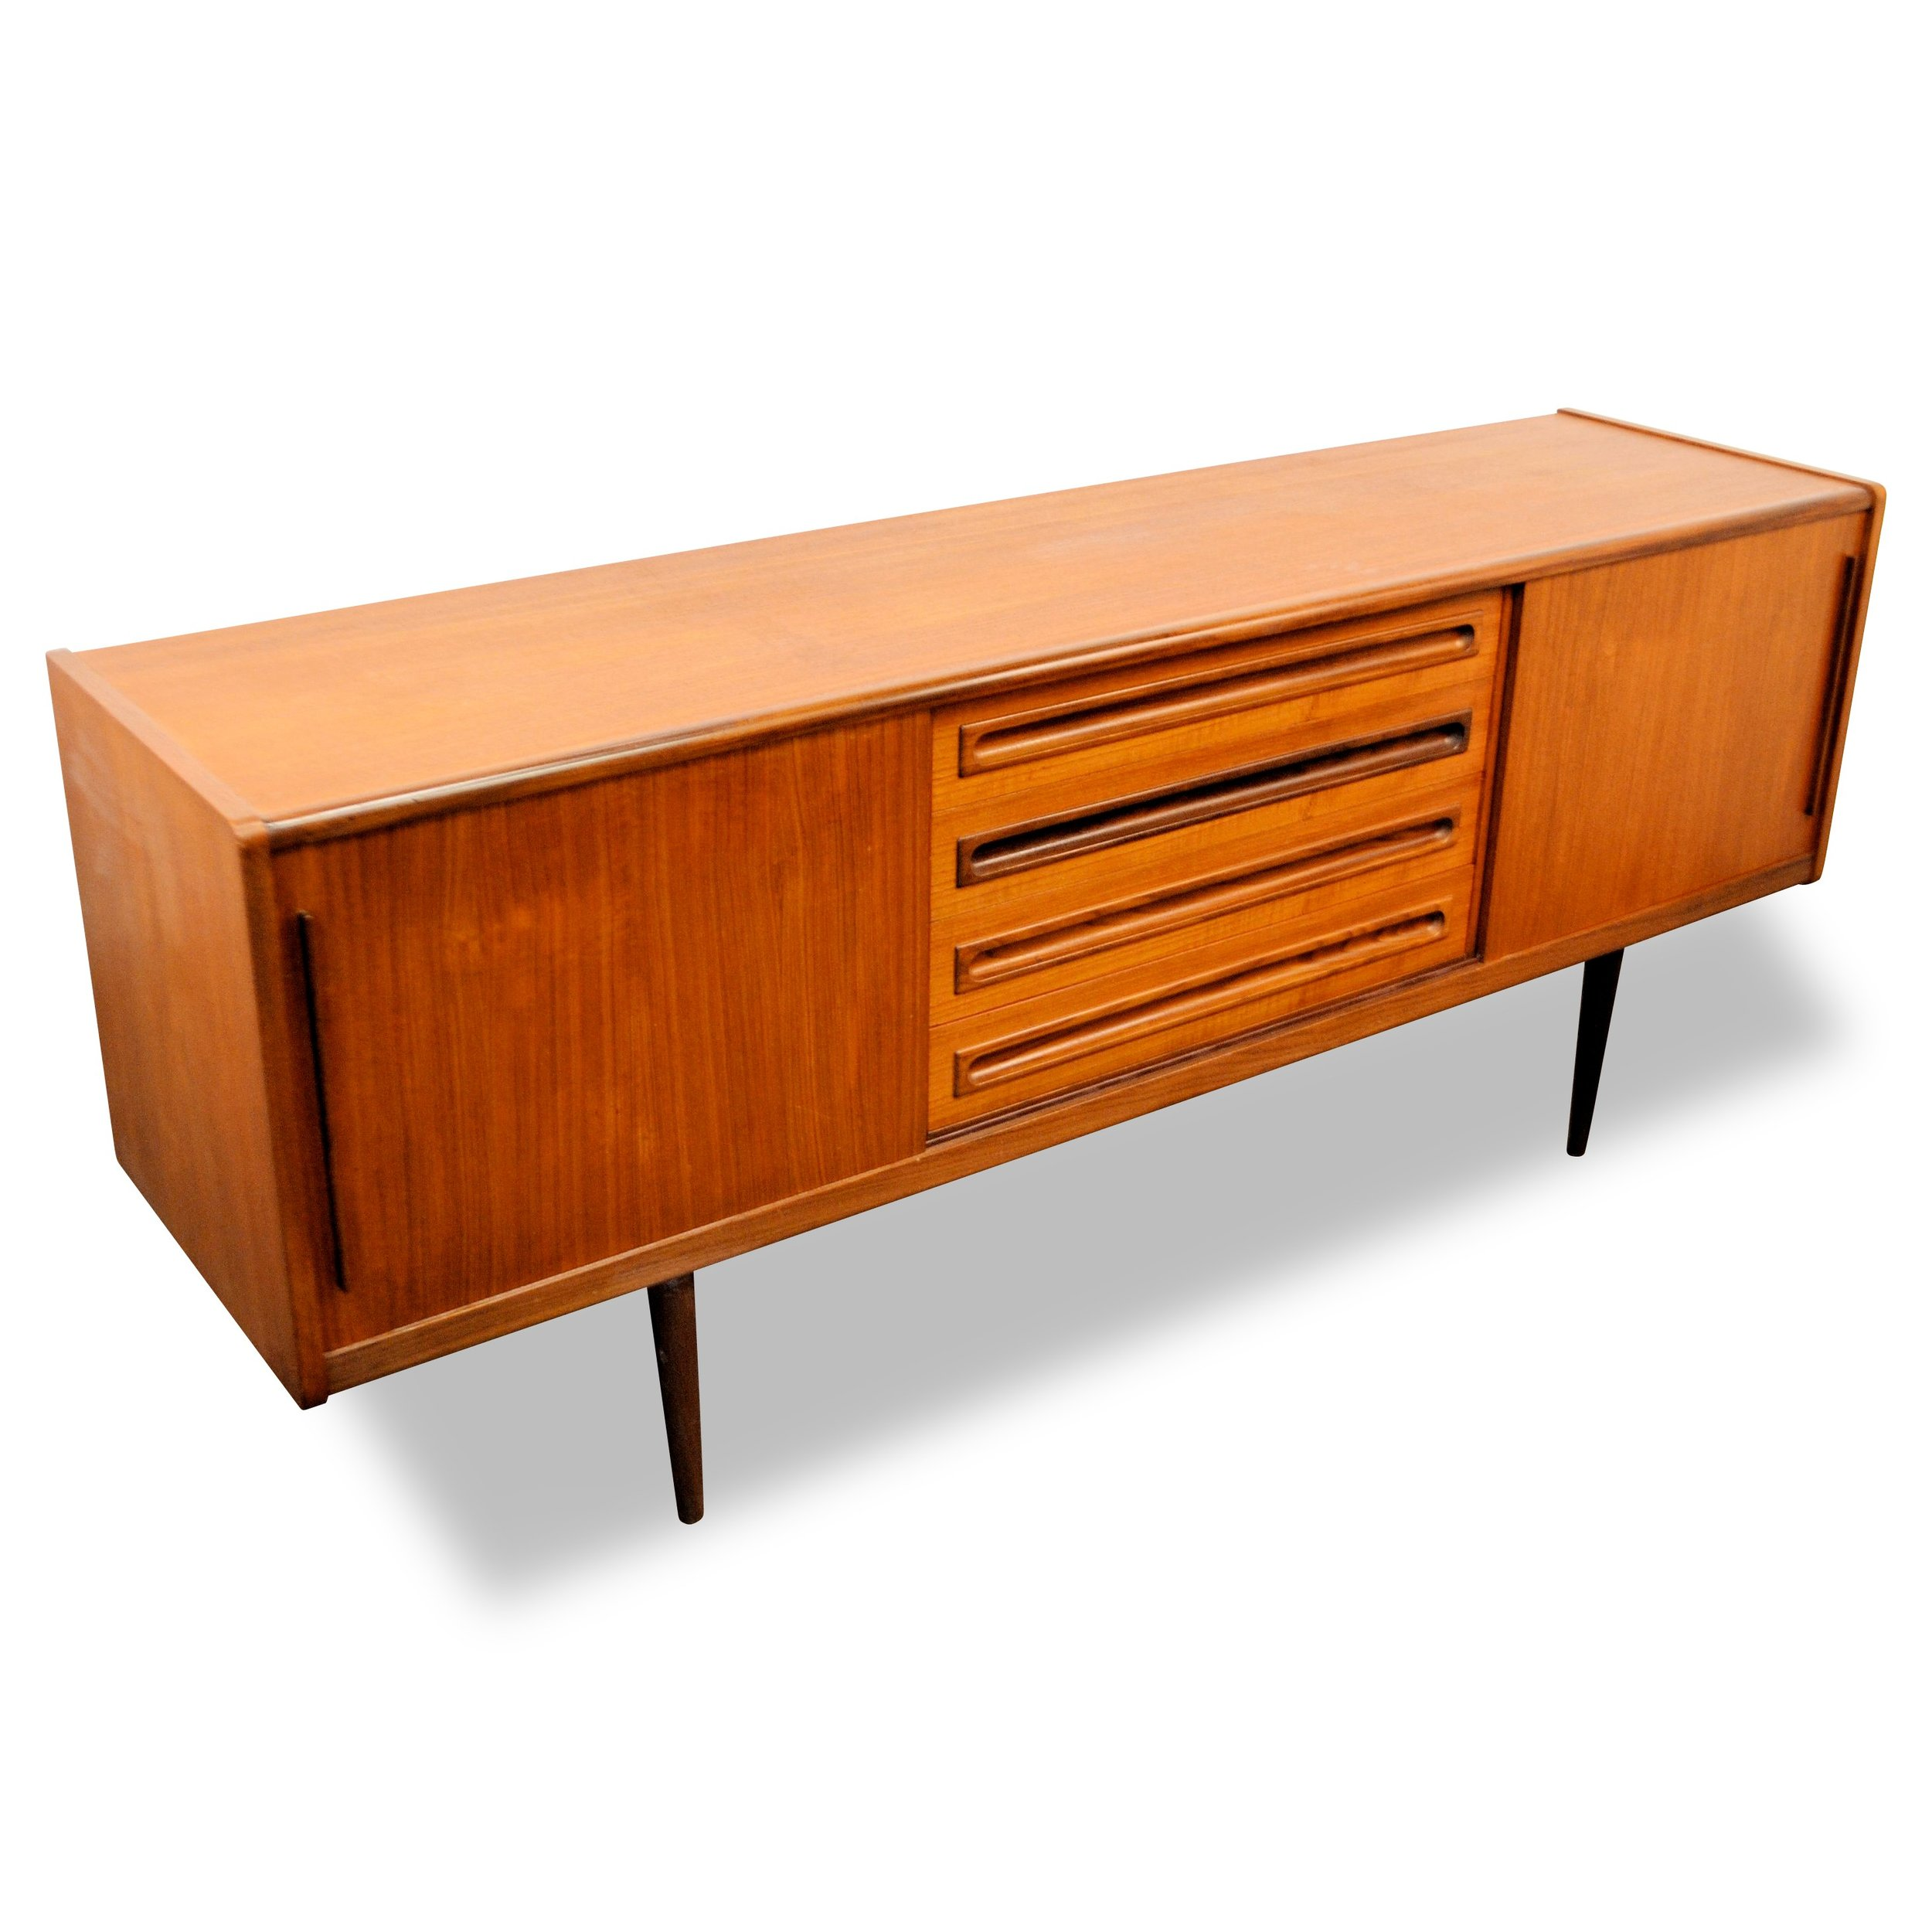 Danish Modern Teak Credenza by Johannes Andersen  Photos courtesy of Gallery Auctions